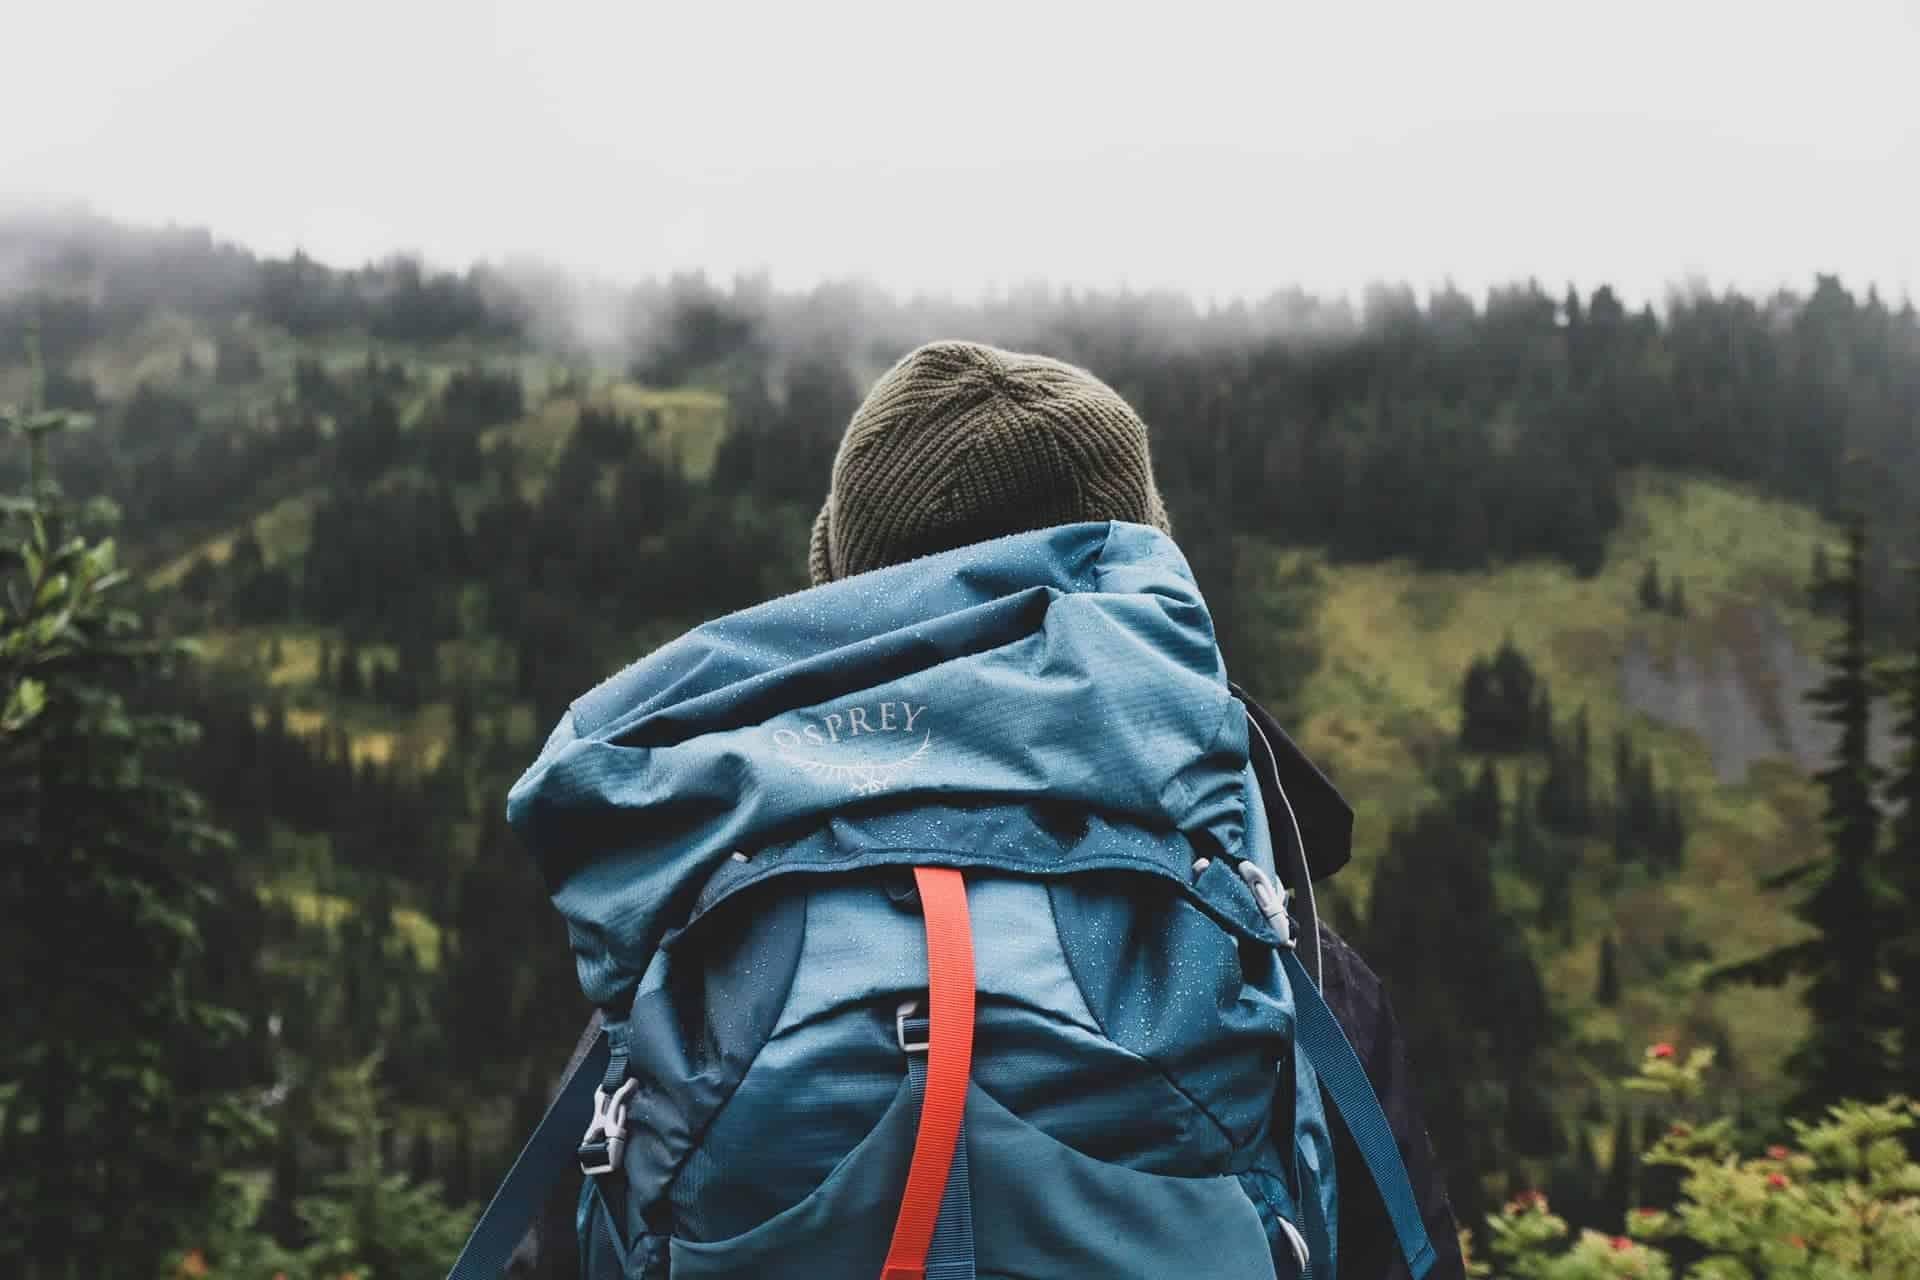 Tips for Creating a Medical Kit for Backpacking